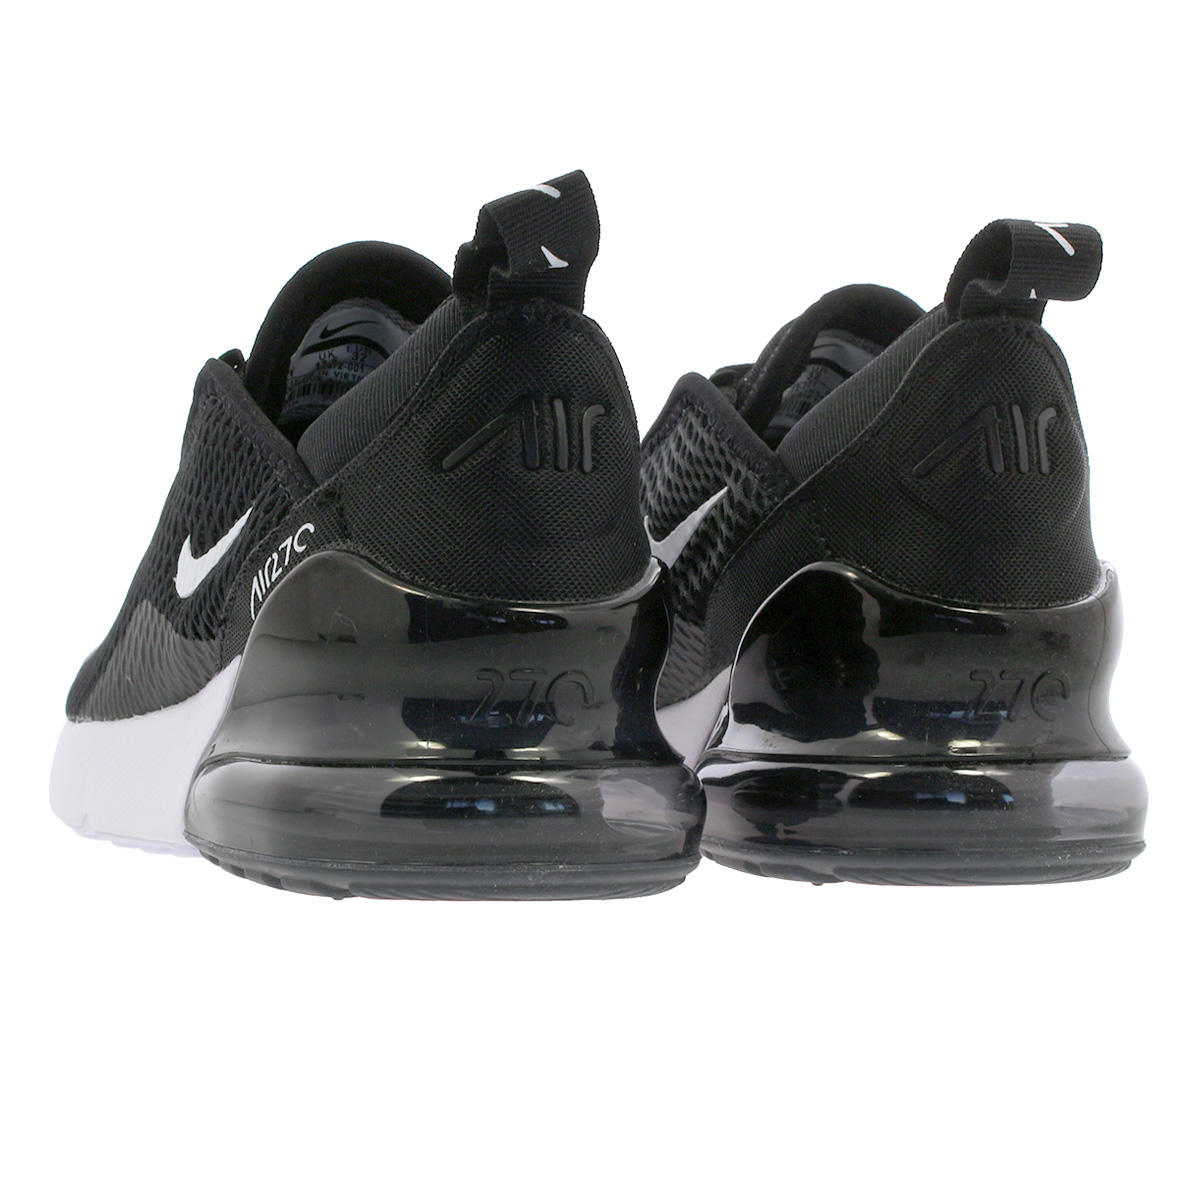 timeless design 66595 de61d NIKE AIR MAX 270 PS Kie Ney AMAX 270 PS BLACK ANTHRACITE WHITE ao2372-001